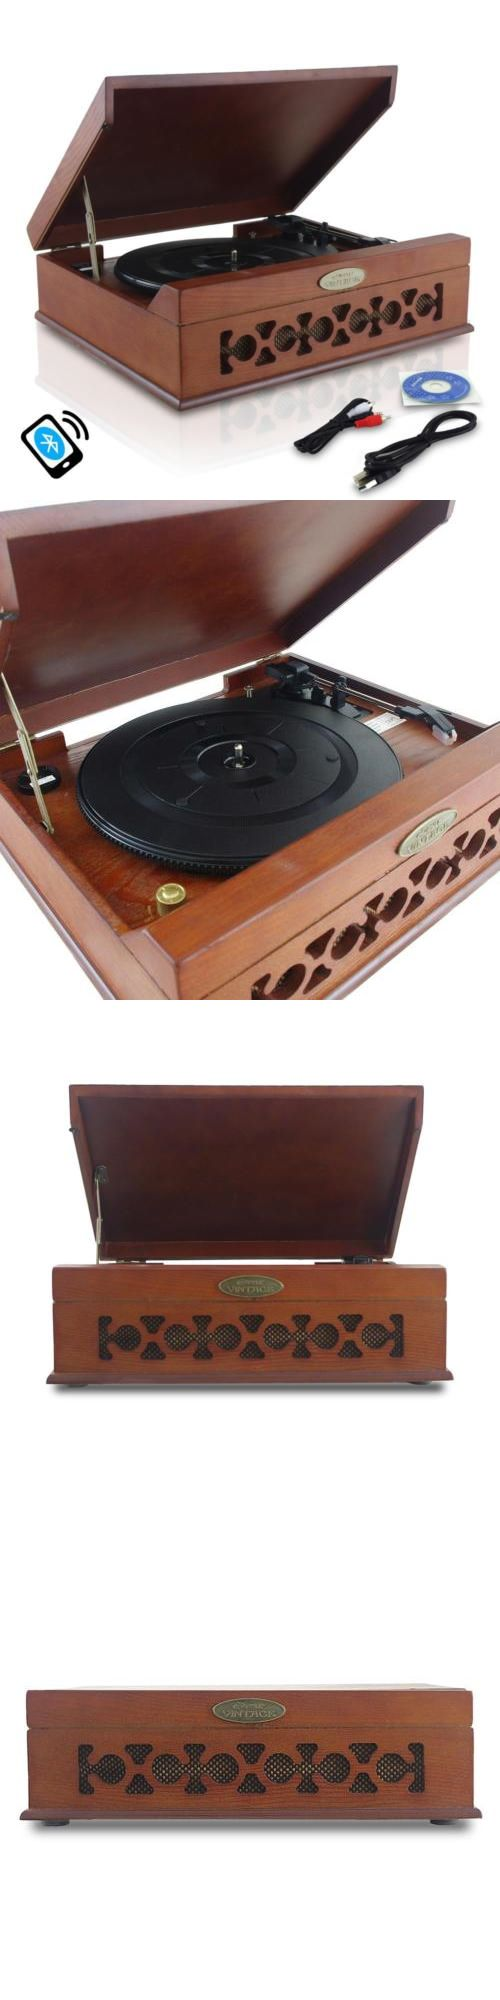 Record Players Home Turntables: New Pyle Pvntt6umrbt Retro Bluetooth Turntable Player With Vinyl Mp3 Recording -> BUY IT NOW ONLY: $99.95 on eBay!